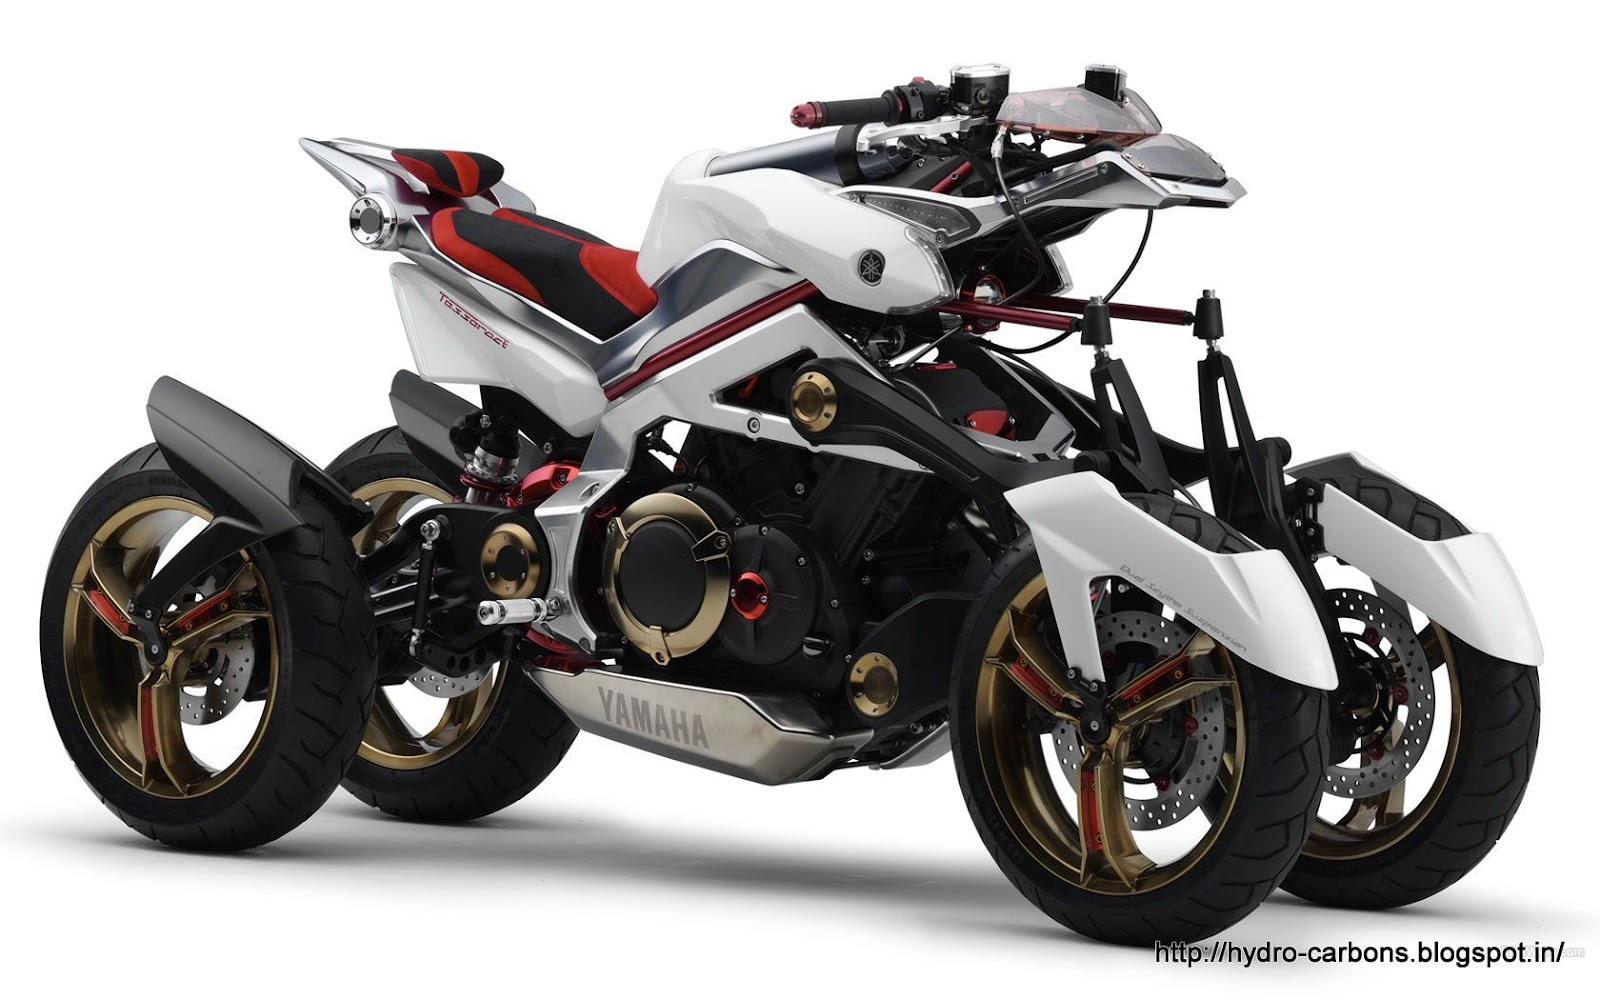 Four Wheelers With Rims : Grease and gasoline the yamaha tesseract concept motorcycle